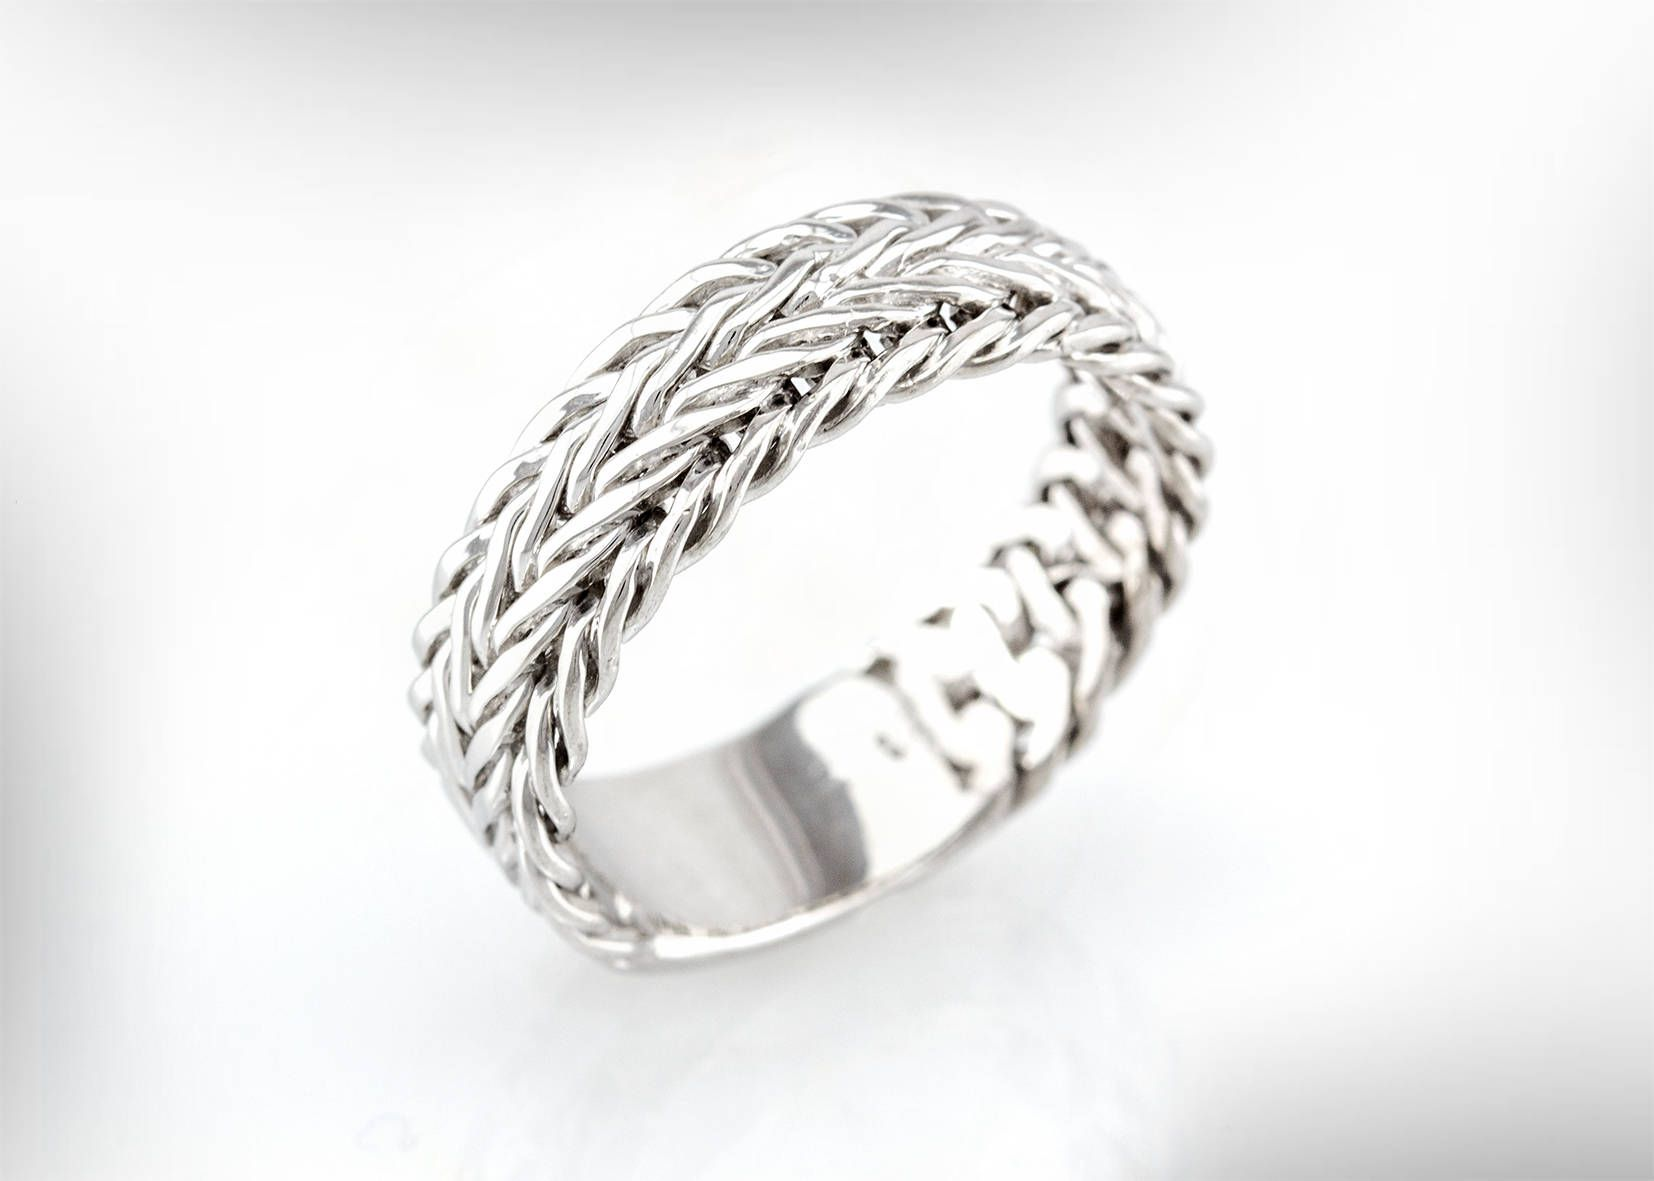 Silver Ring for Men Men s Wedding Band Braided Ring for Him